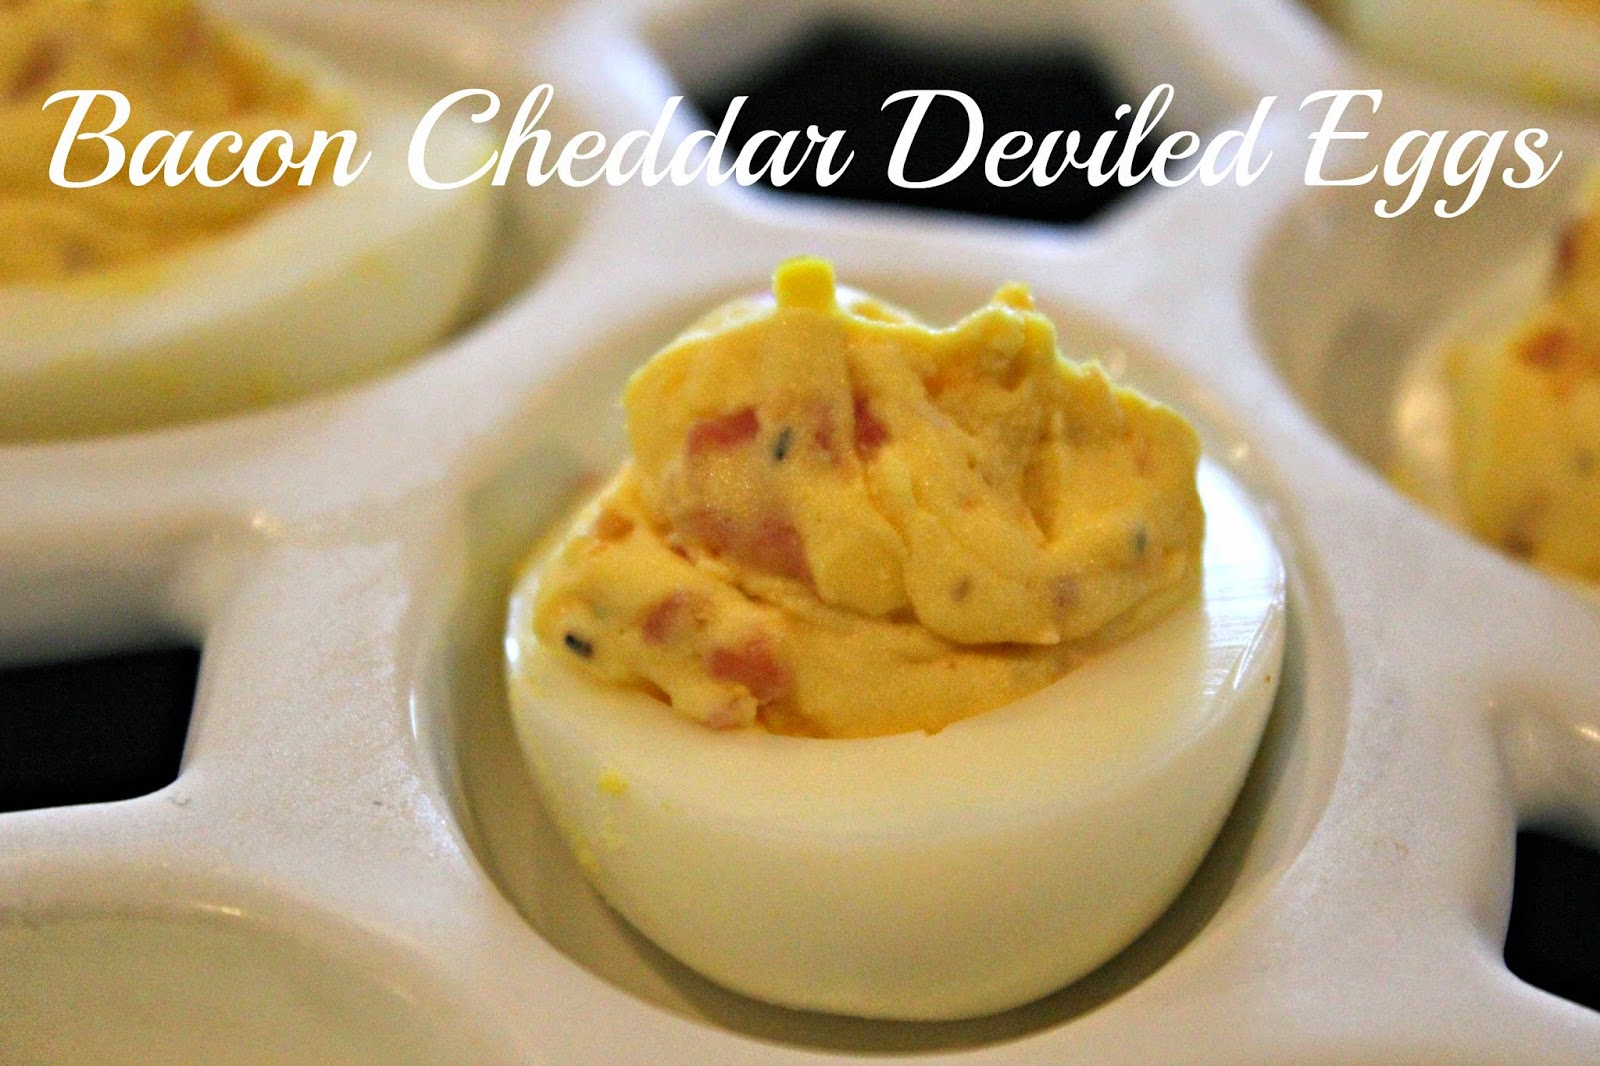 simply made with love: Bacon Cheddar Deviled Eggs